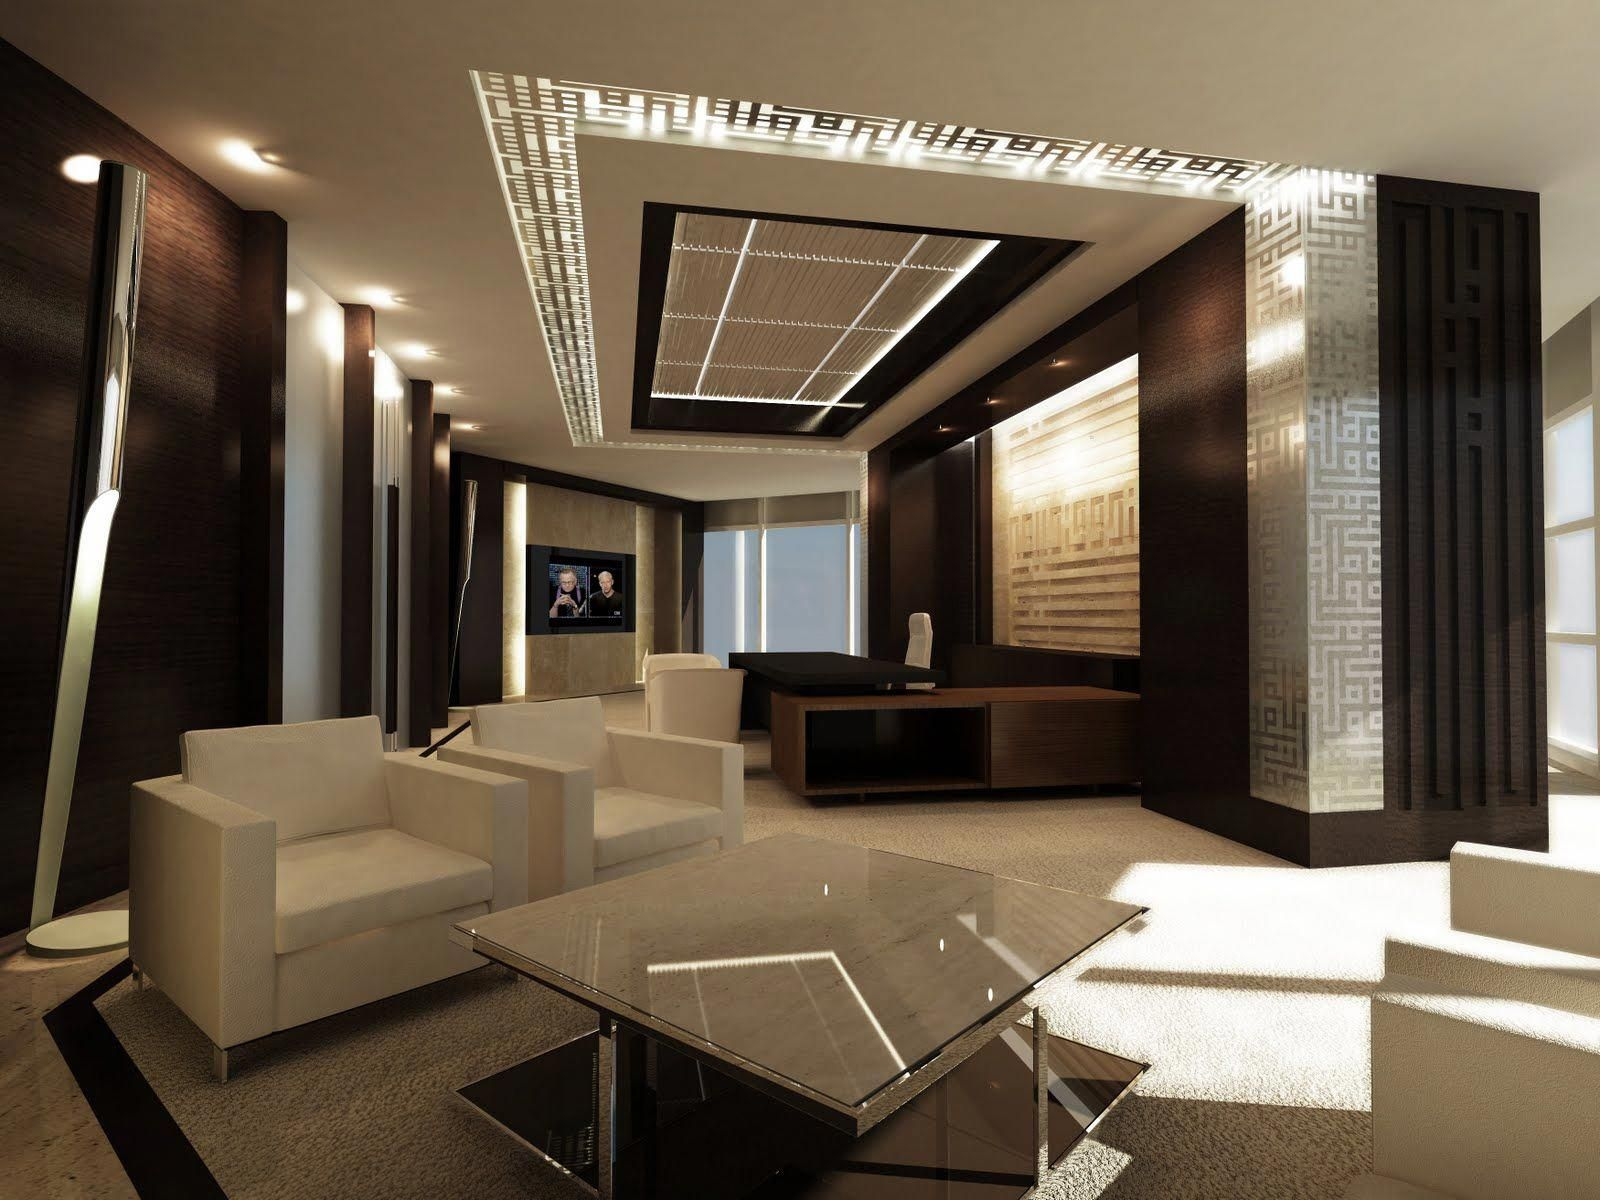 Image Result For Best Executive Office Interior Design